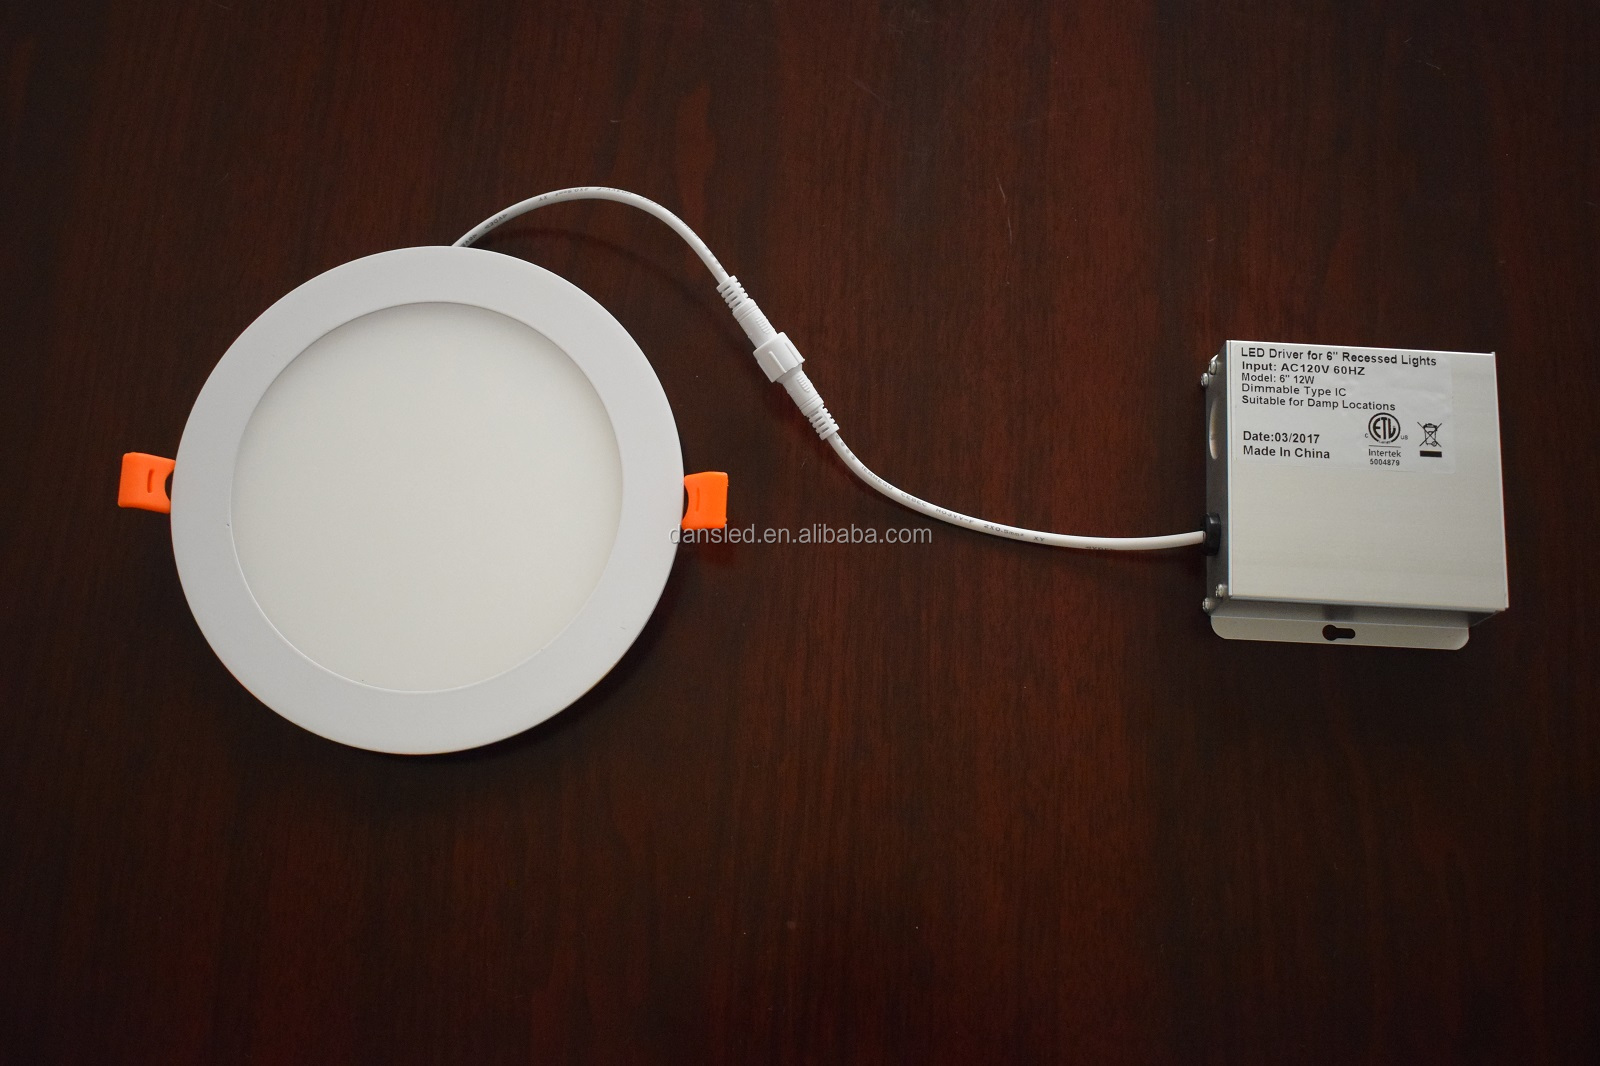 Commercial Electric Led Recessed Light Wholesale Recessed Lighting